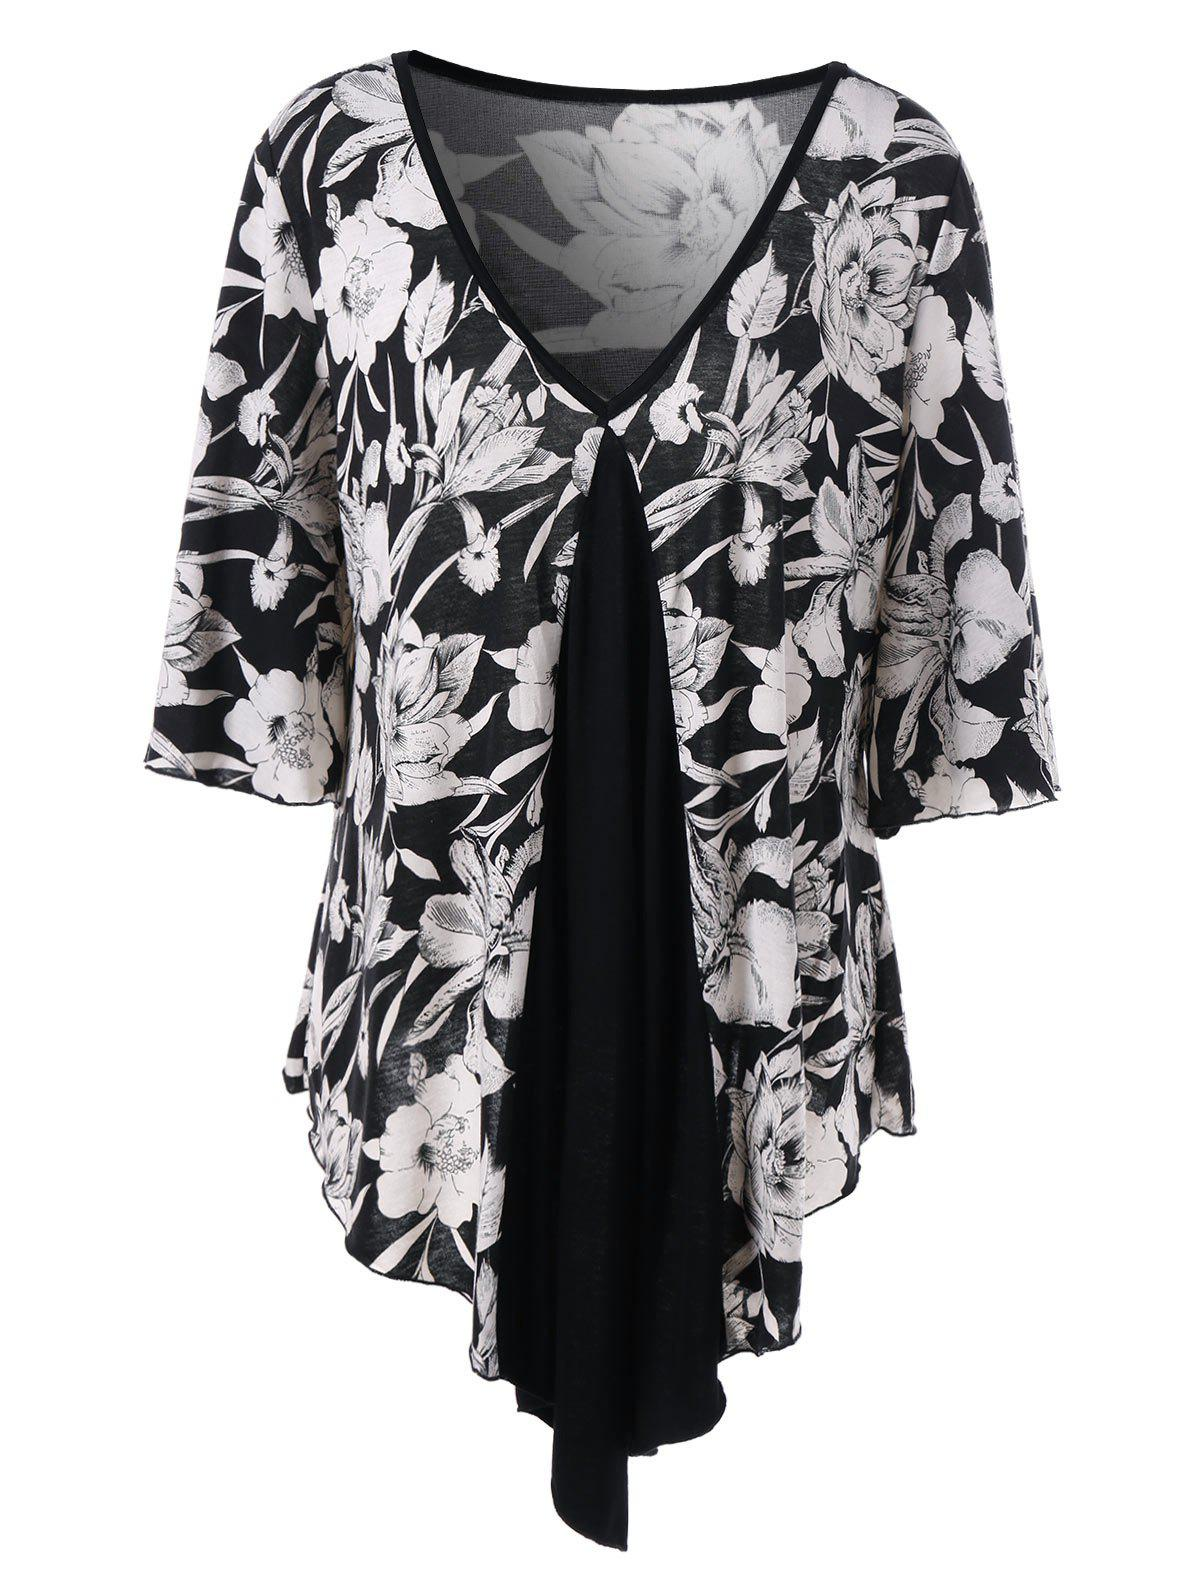 Plus Size V Neck Asymmetric Floral T-ShirtWOMEN<br><br>Size: 4XL; Color: BLACK; Material: Polyester,Spandex; Shirt Length: Regular; Sleeve Length: Half; Collar: V-Neck; Style: Casual; Season: Summer; Pattern Type: Floral; Weight: 0.3900kg; Package Contents: 1 x T-Shirt;